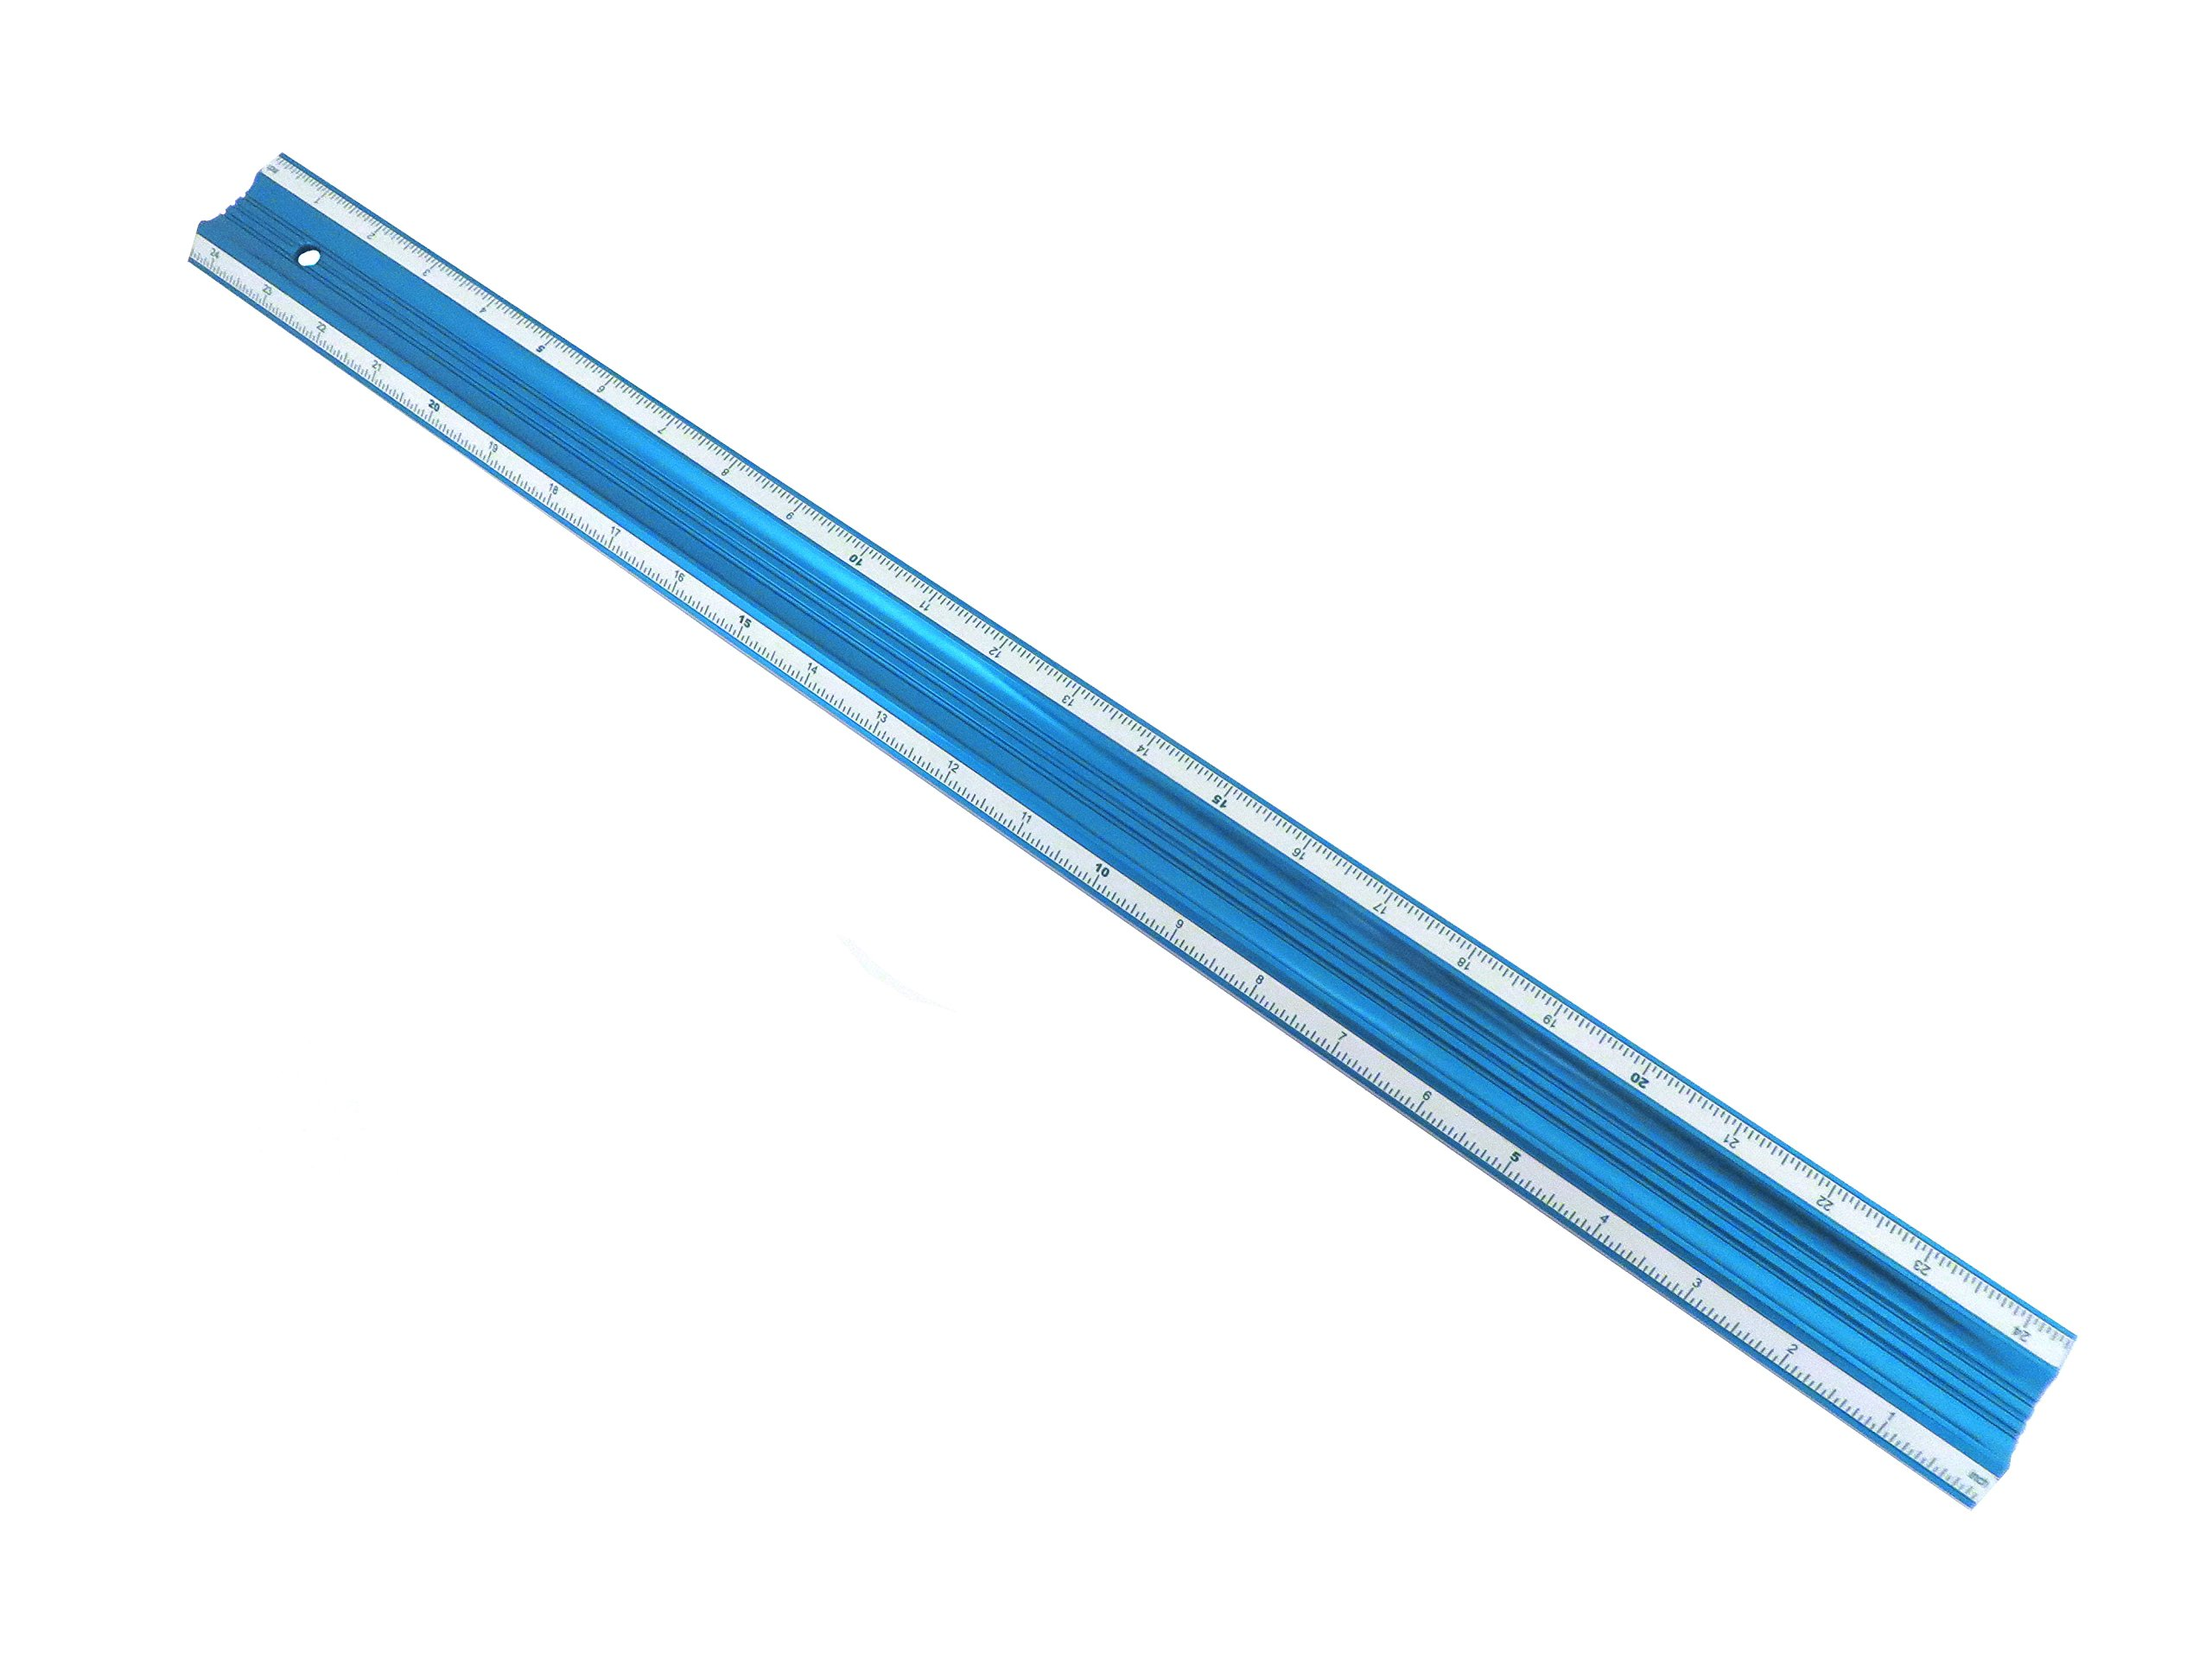 24'' Anodized Aluminum Bevel Edge Straight Edge Guaranteed Straight to Within .001'' Over Full 24'''' Length BESE24